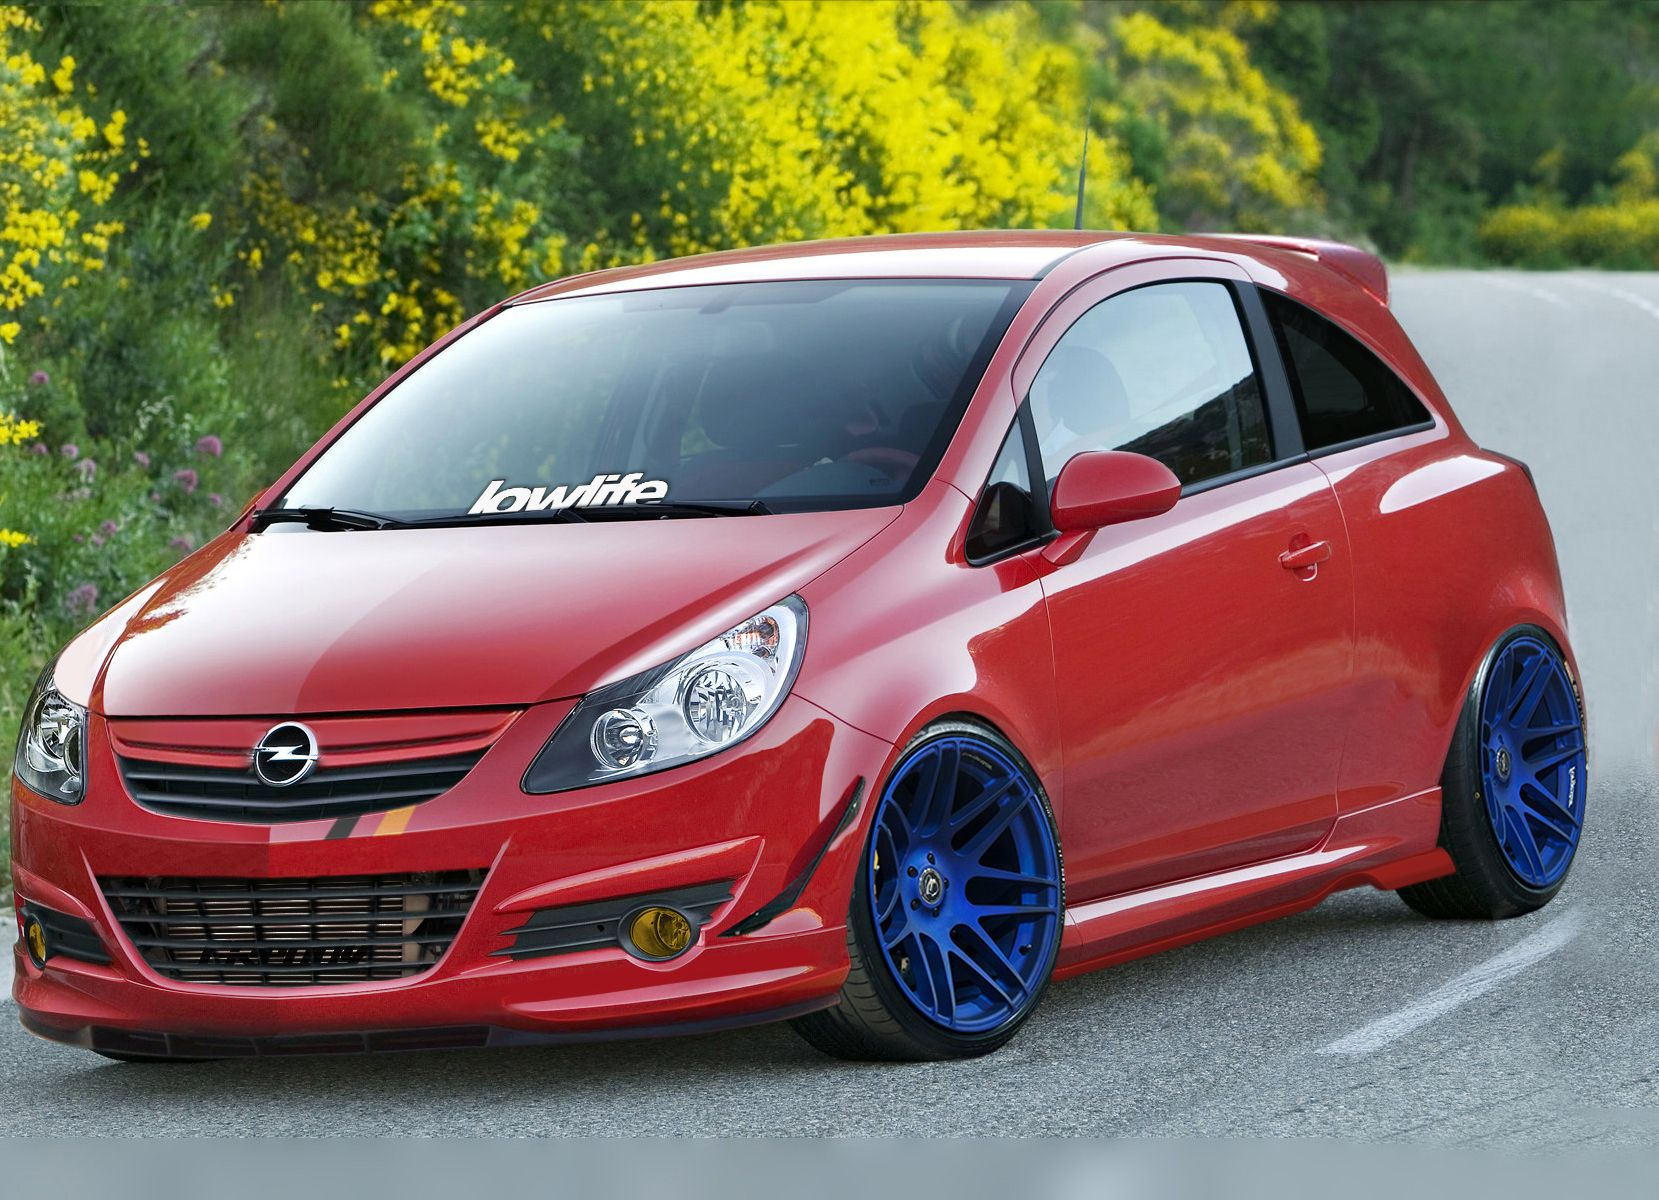 Opel Corsa Gsi Stance Low Tuning Photoshoped Opel Corsa Car Opel